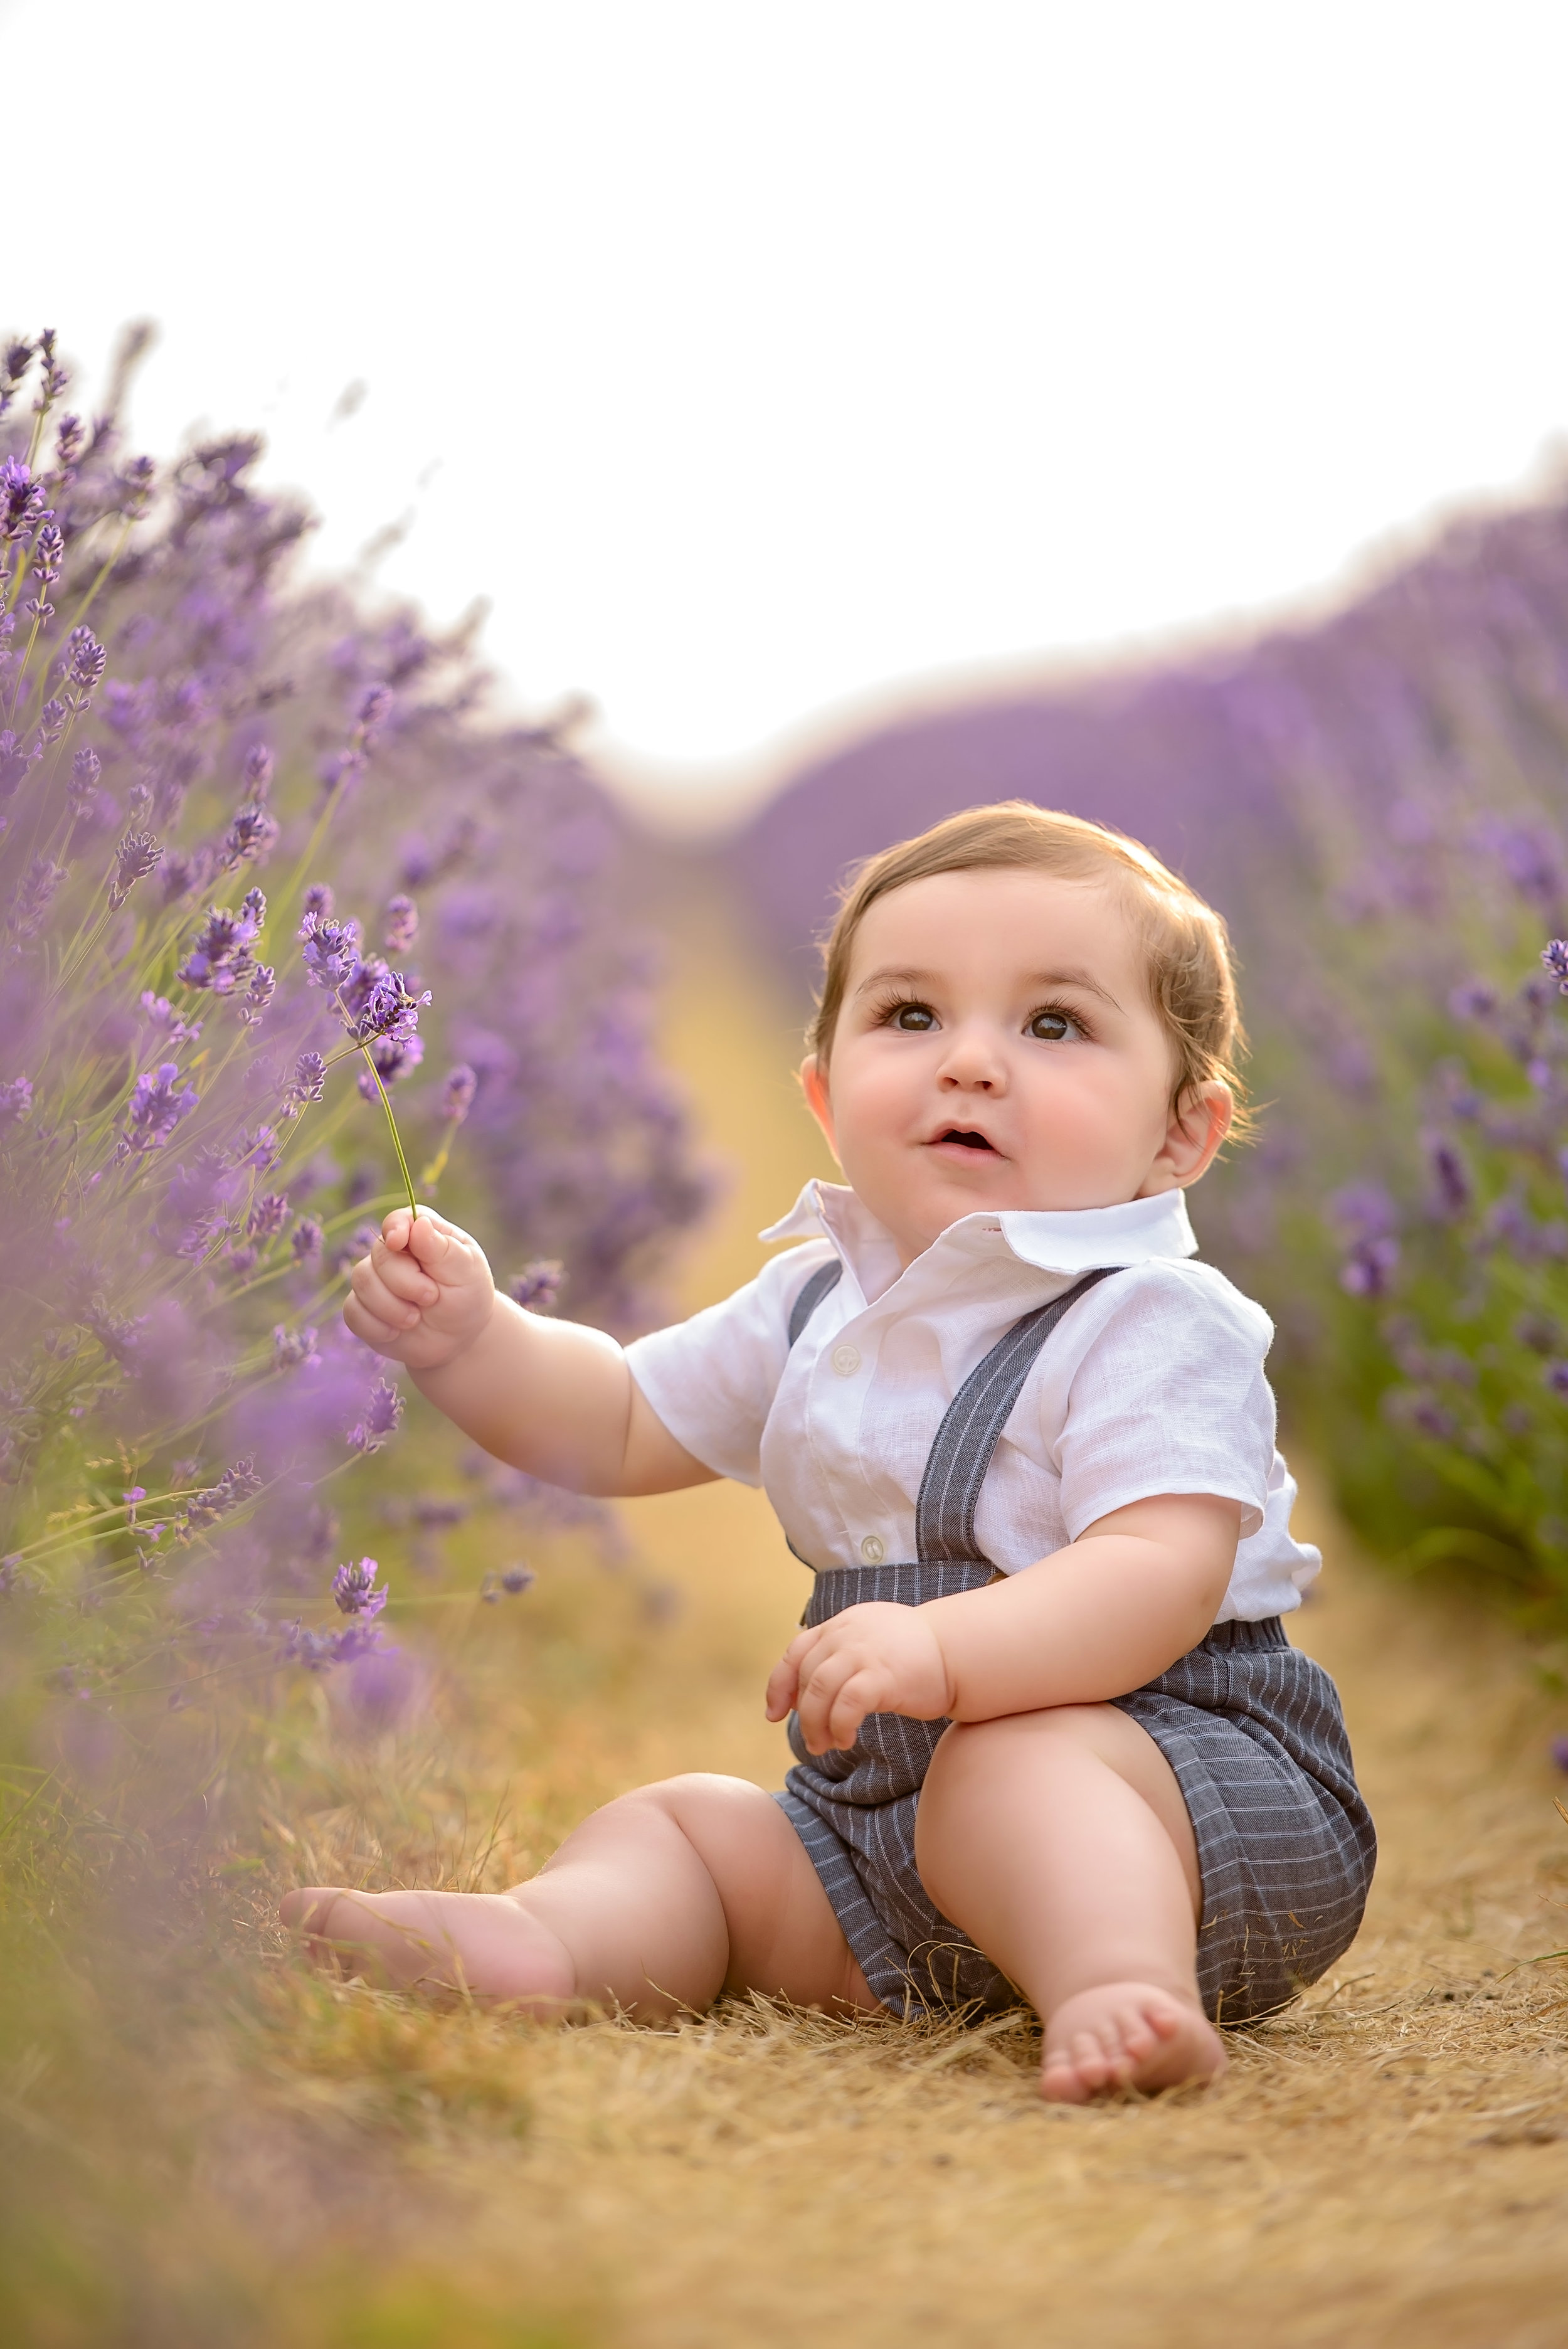 Child photography at Mayfield lavender farm